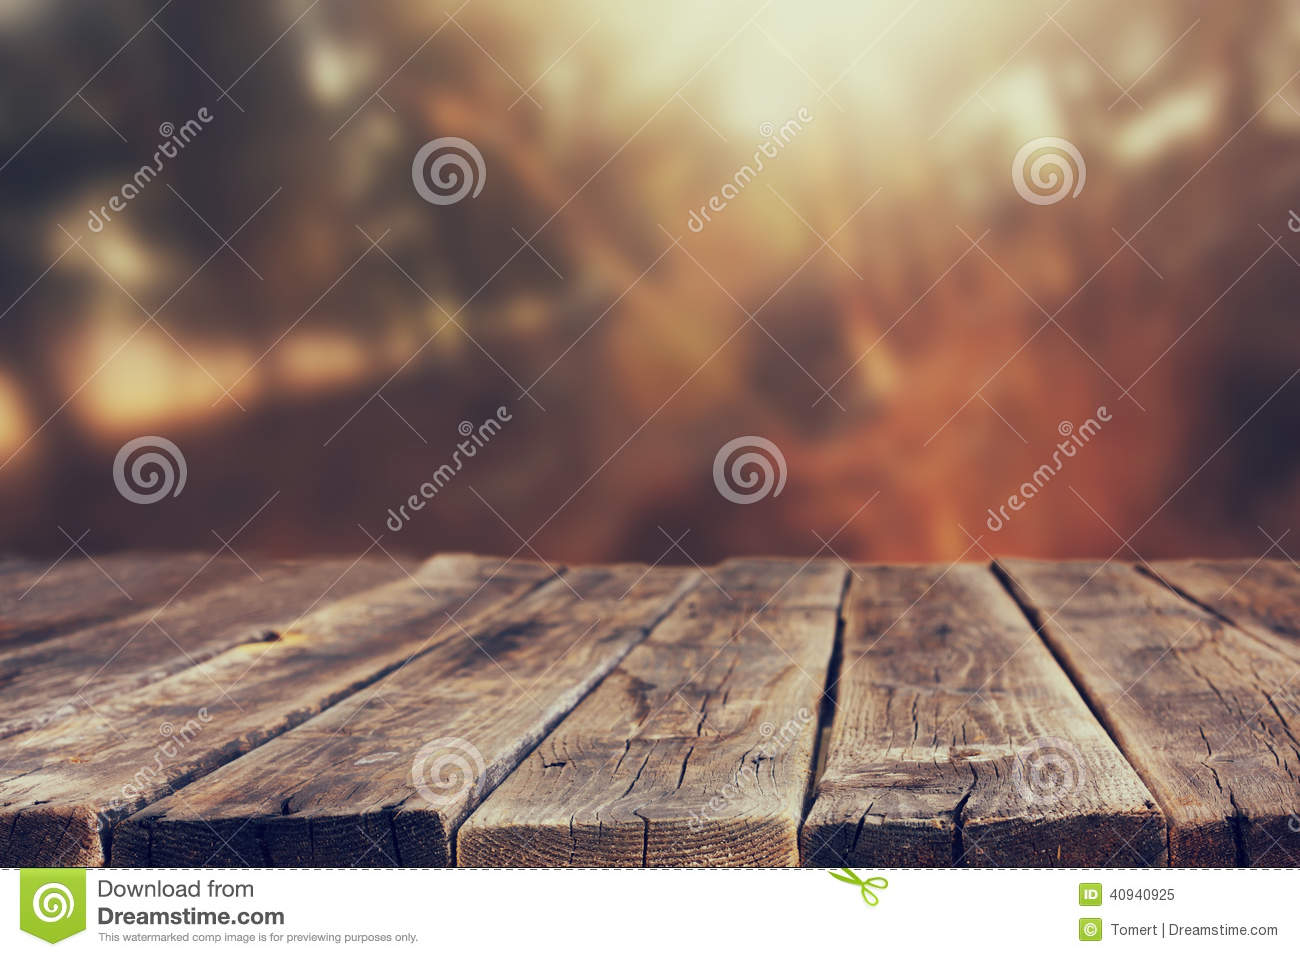 Wood boards and nature backgrounds of summer light among trees